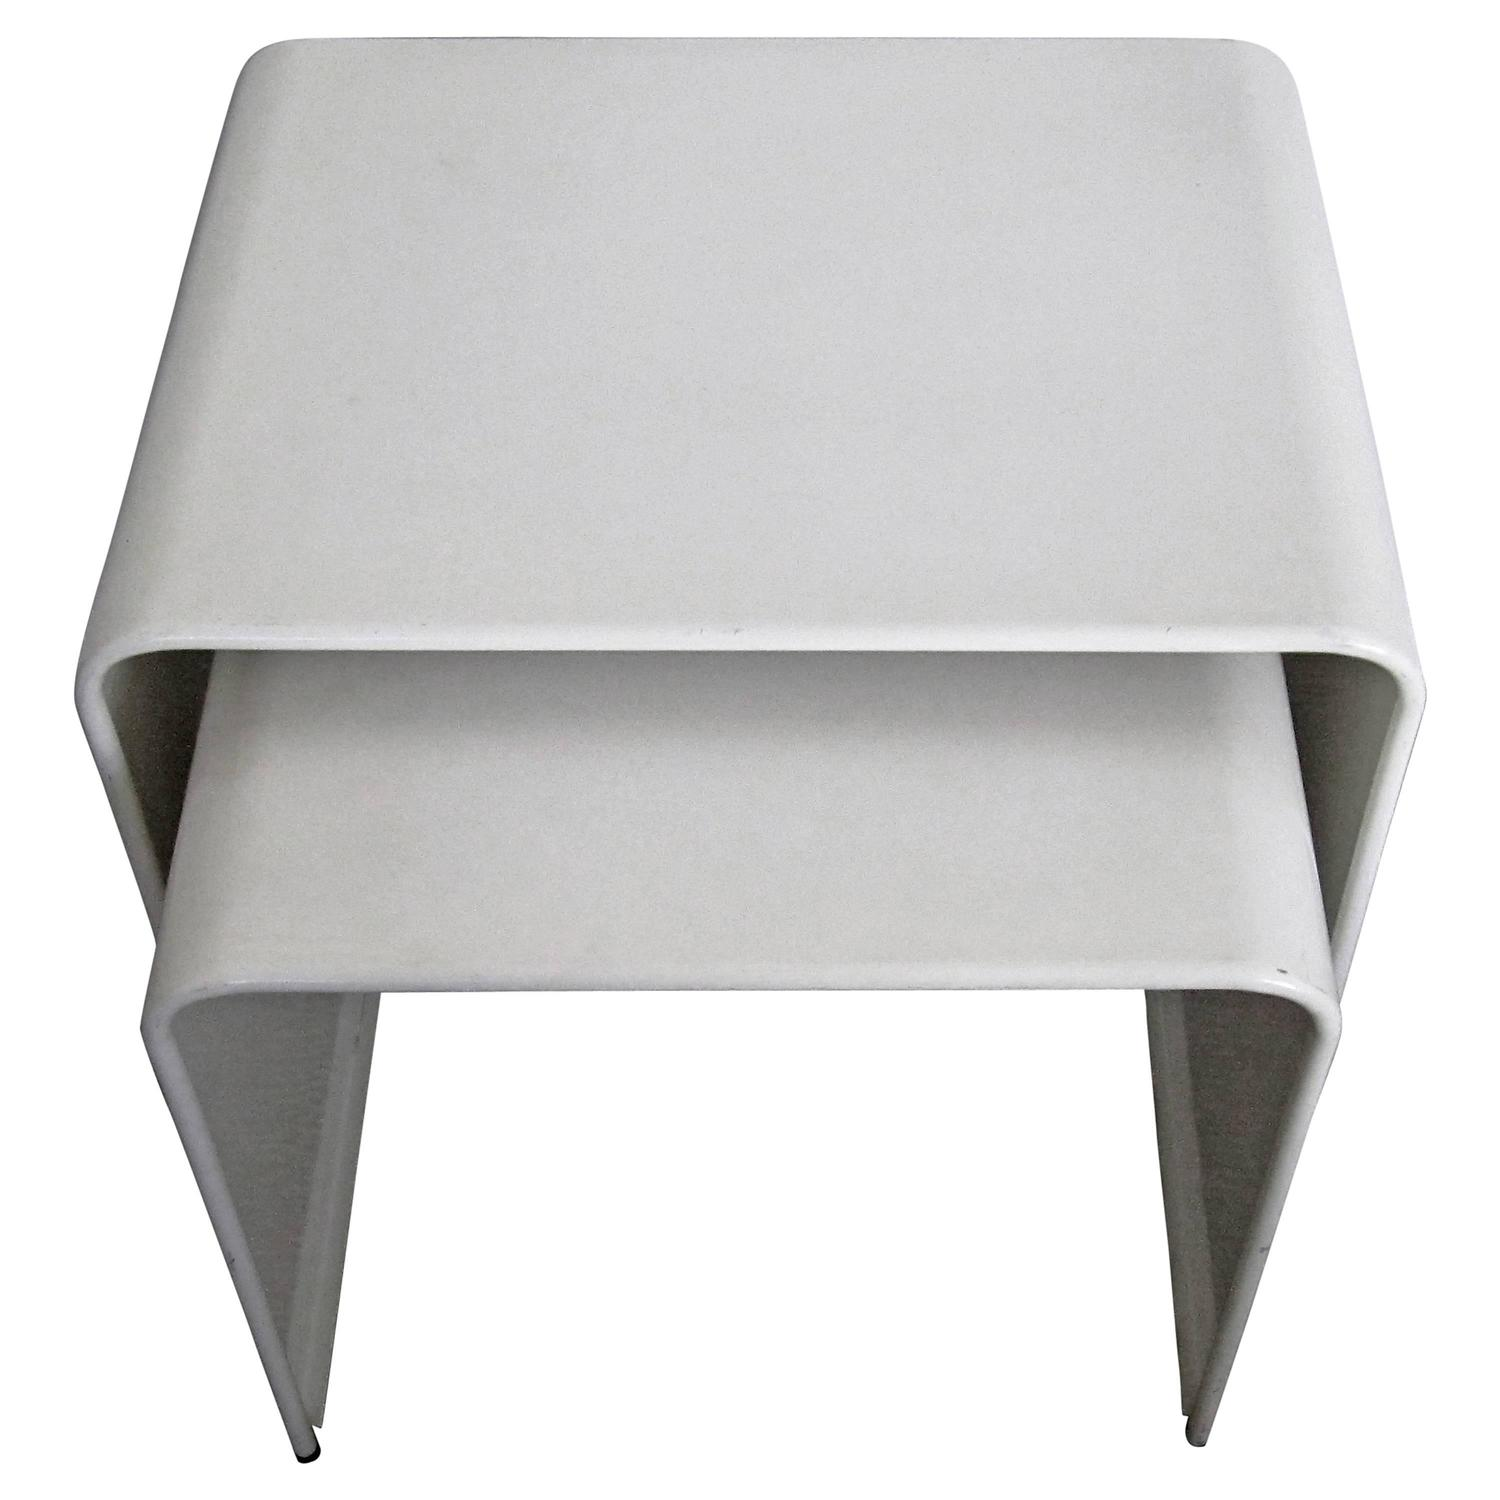 Vintage Modern White Enameled Nesting End Or Side Tables At 1stdibs. Full resolution‎  image, nominally Width 1500 Height 1500 pixels, image with #413E37.